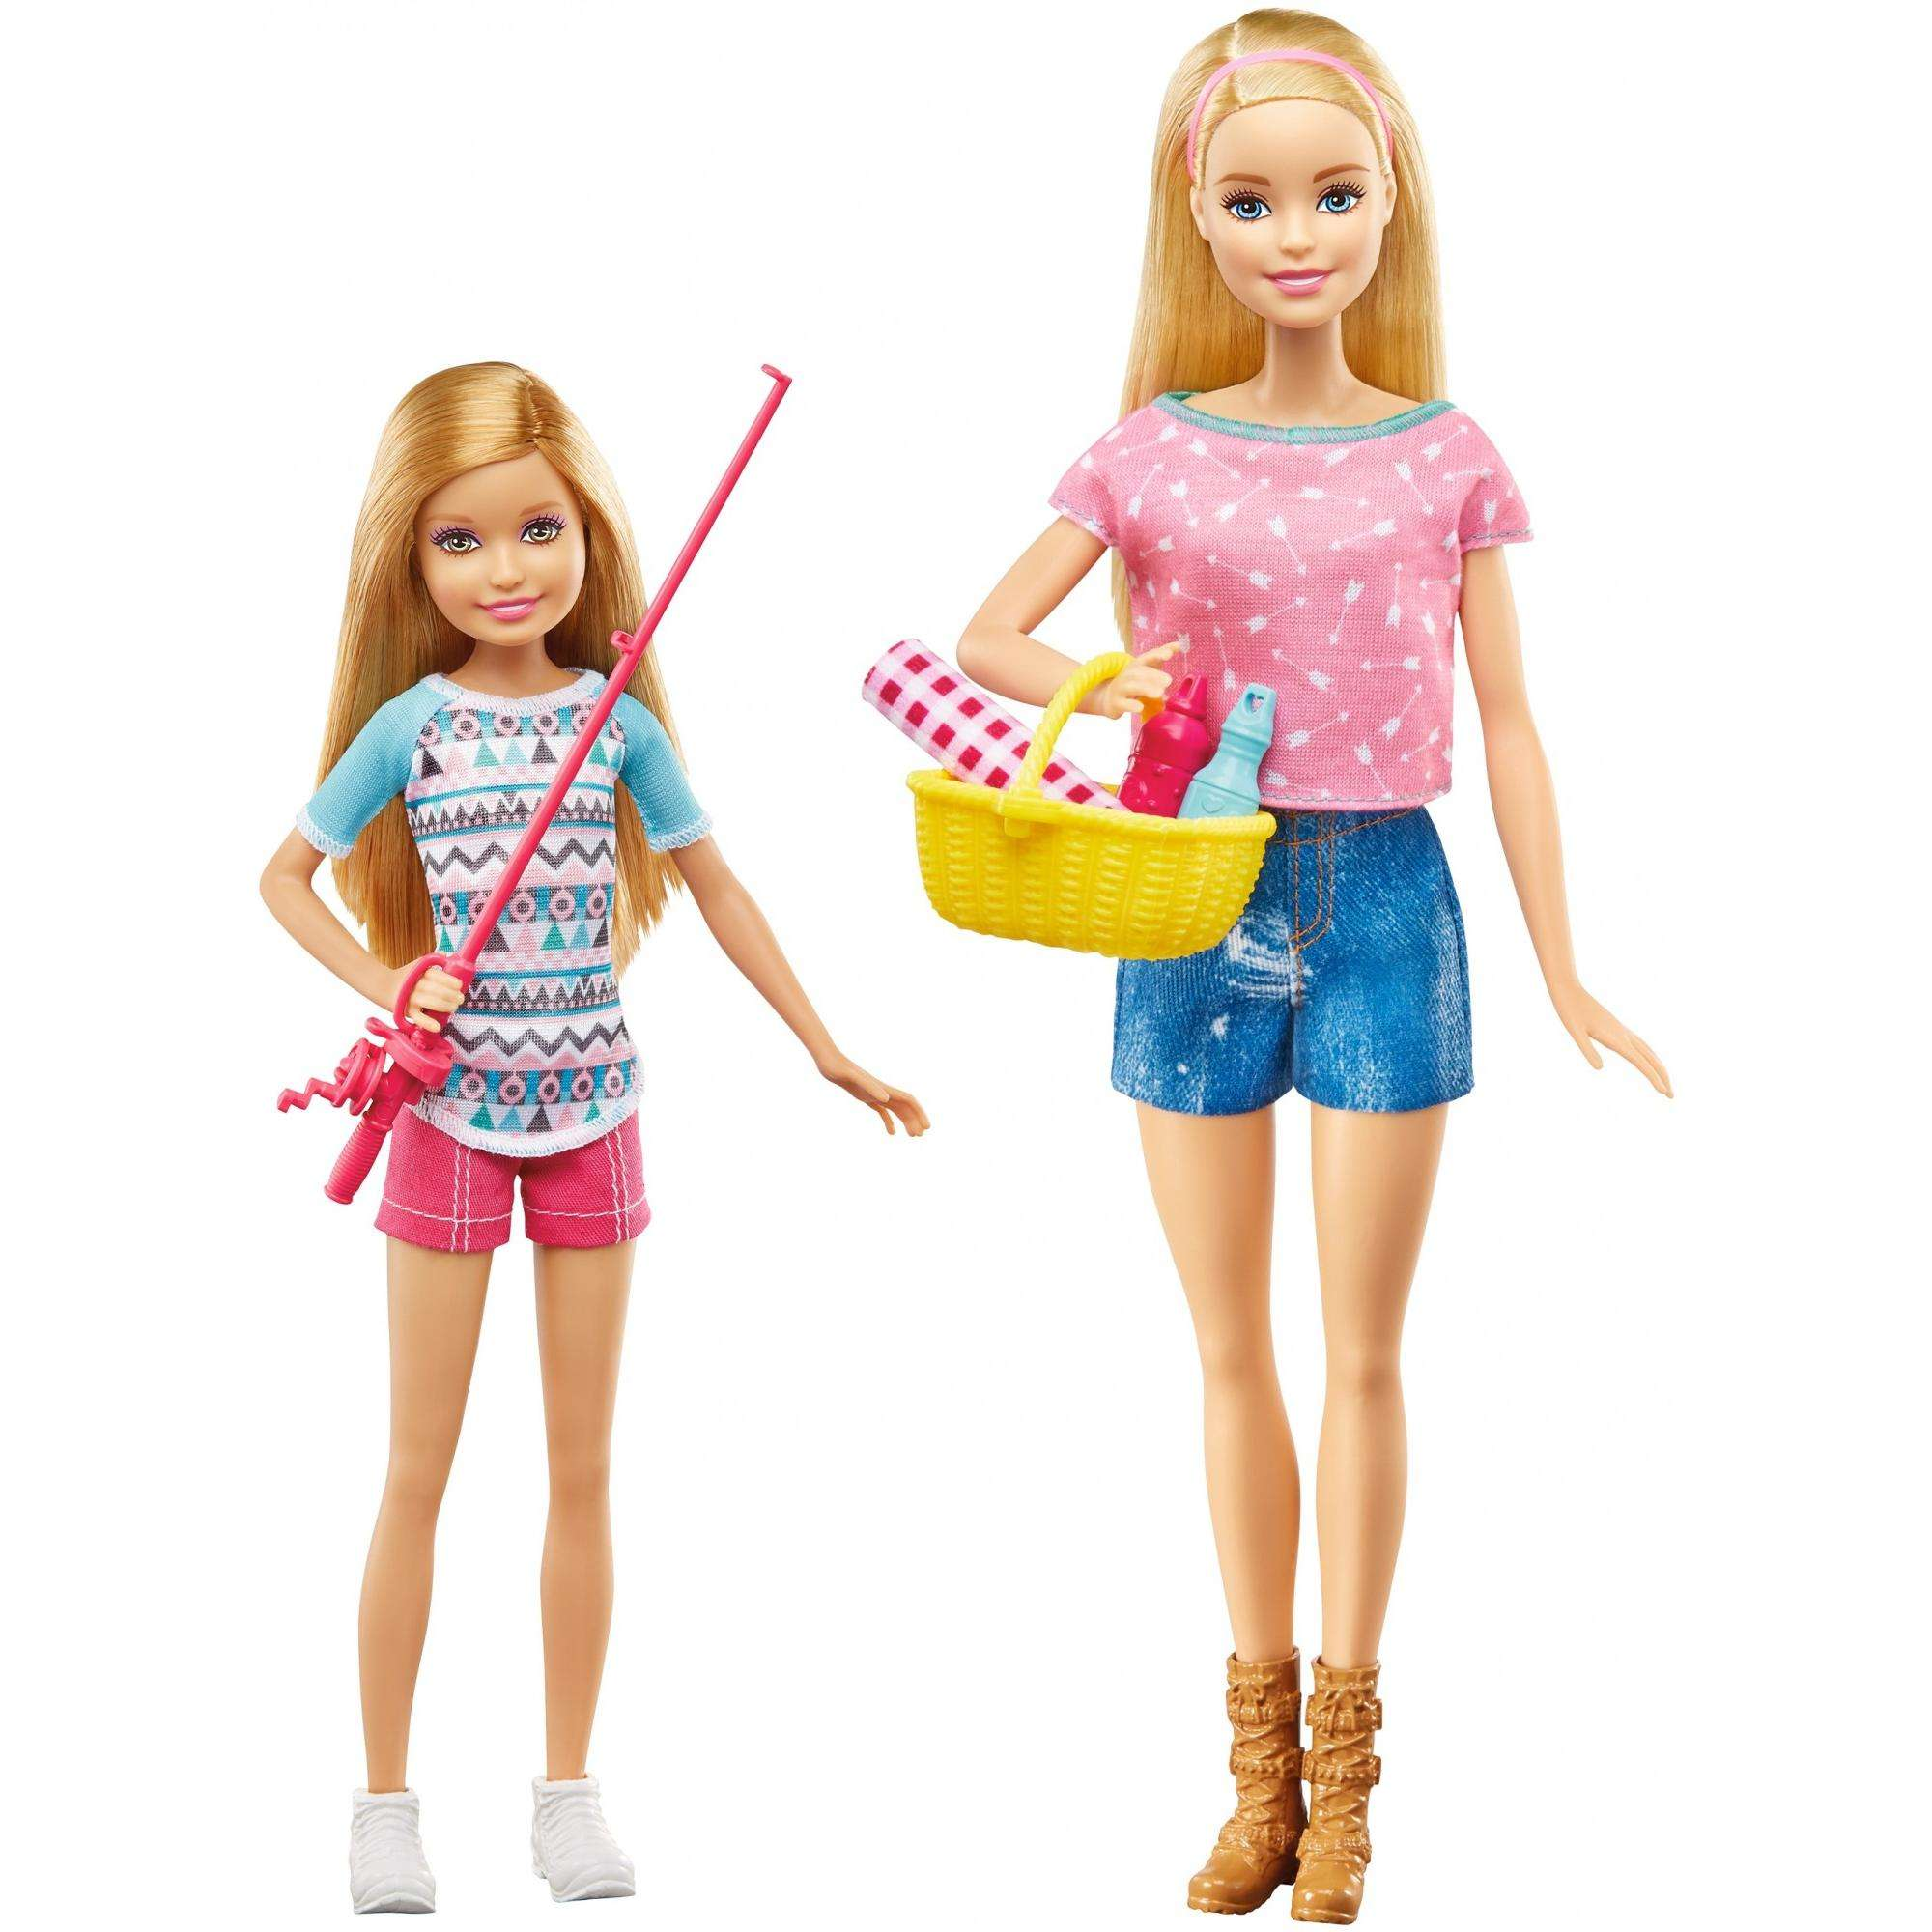 Barbie Camping Fun Barbie & Stacie Dolls with Fishing & Picnic Accessories